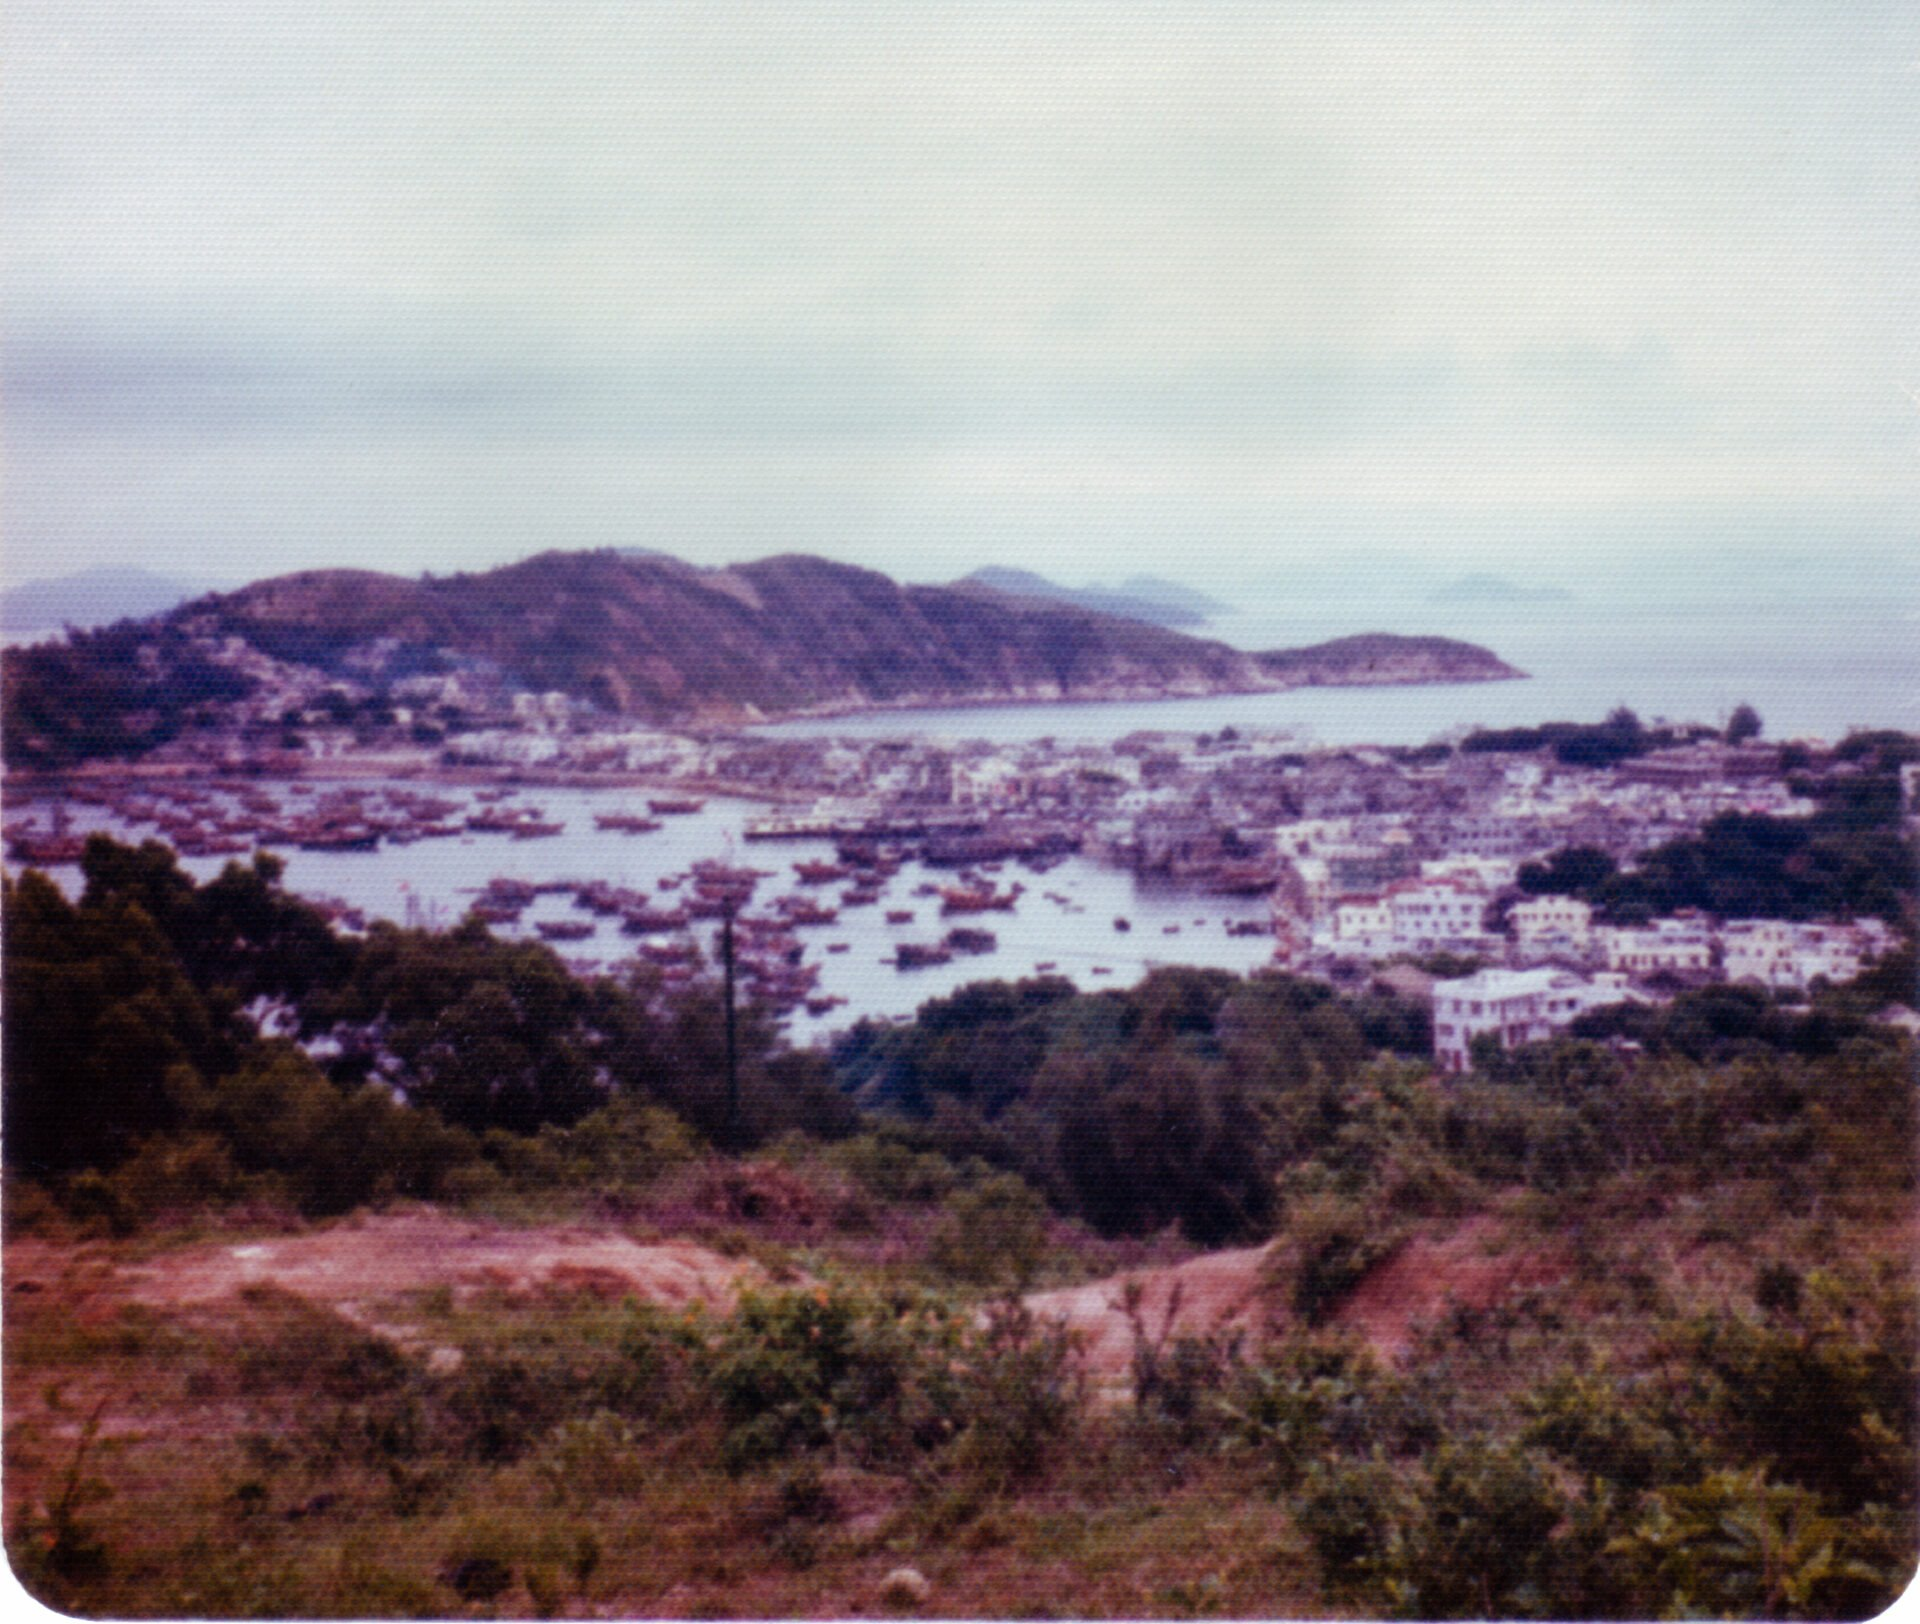 Cheung Chao seen from hills near cemetery on Cheung Chao Hong Kong